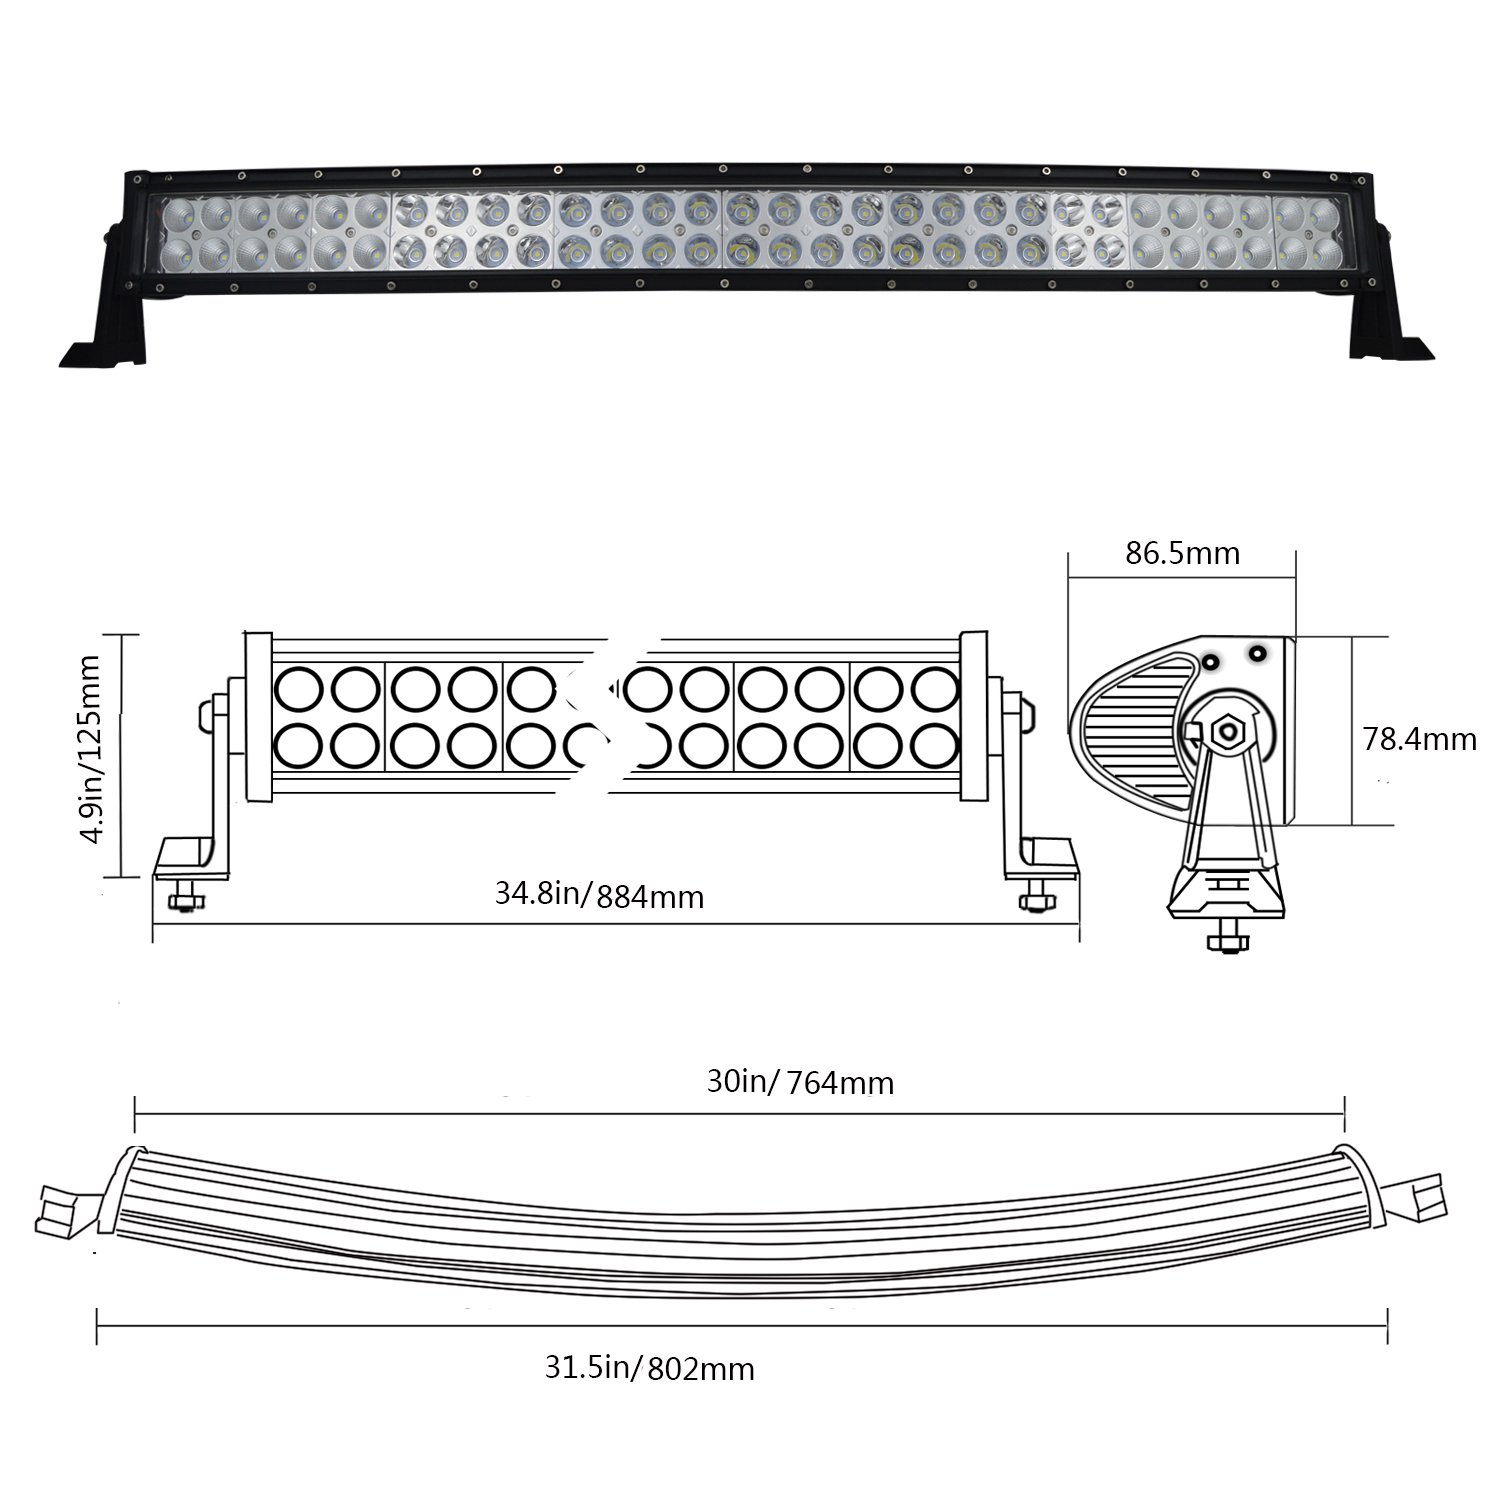 Willpower 10Pcs 4 inch Led Work Light Bar 27W 2200LM Driving Pods Flood Beam Work Lamp For Off-Road Suv Boat 4X4 Jeep JK 4Wd Truck 12V-24V 4333010435